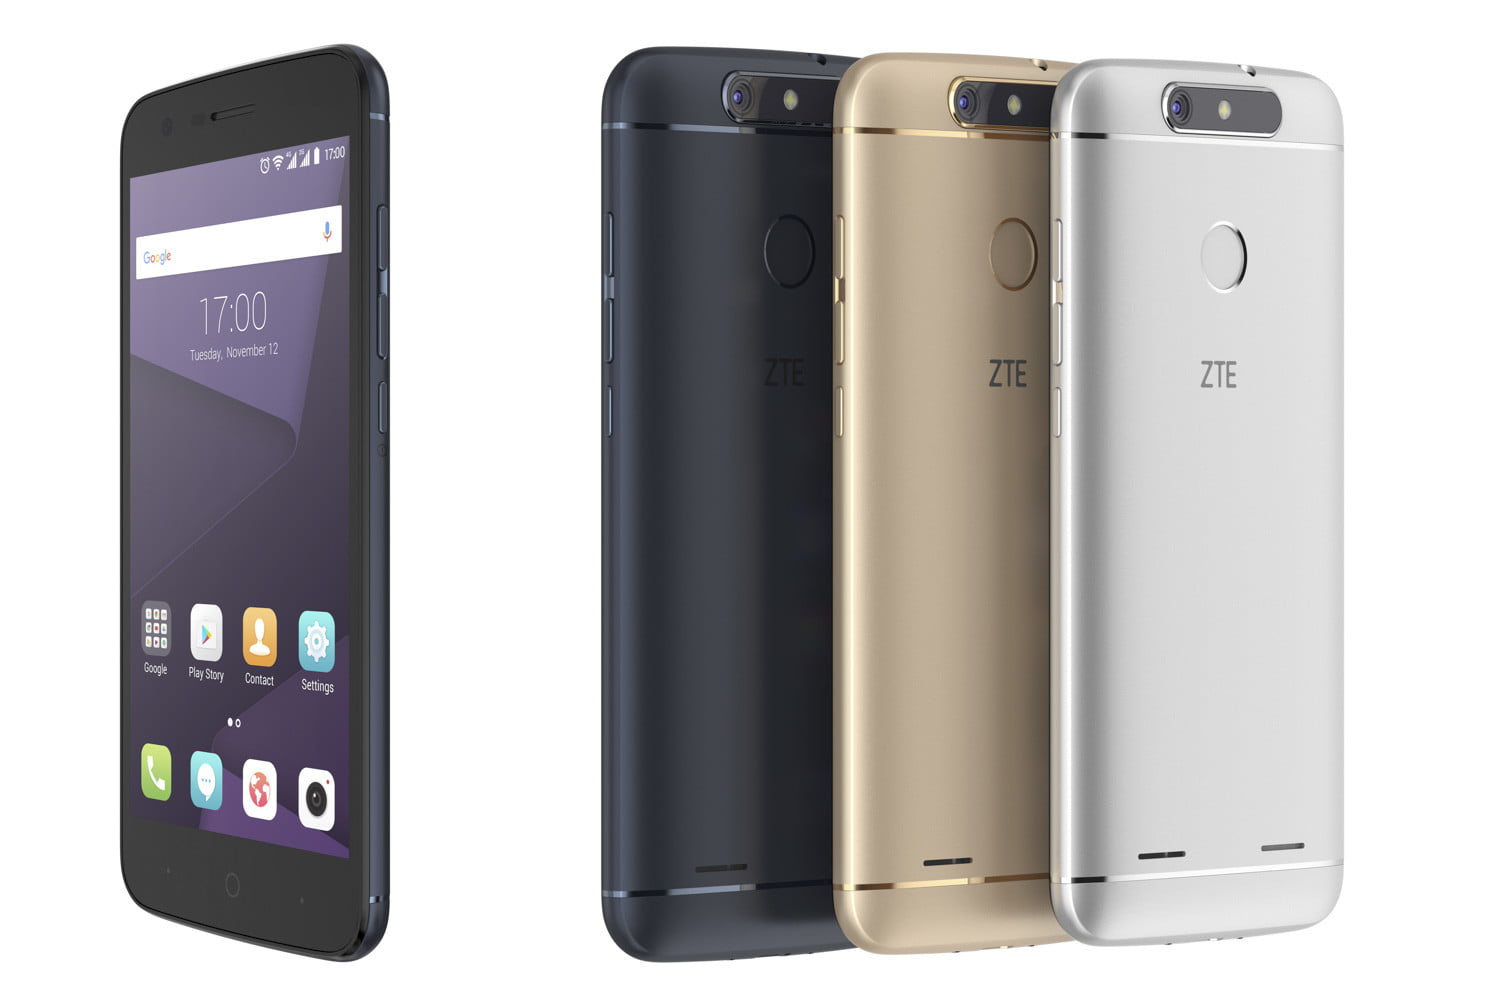 Zte Adds More Options To Its Blade Series With The V8 Lite And V8